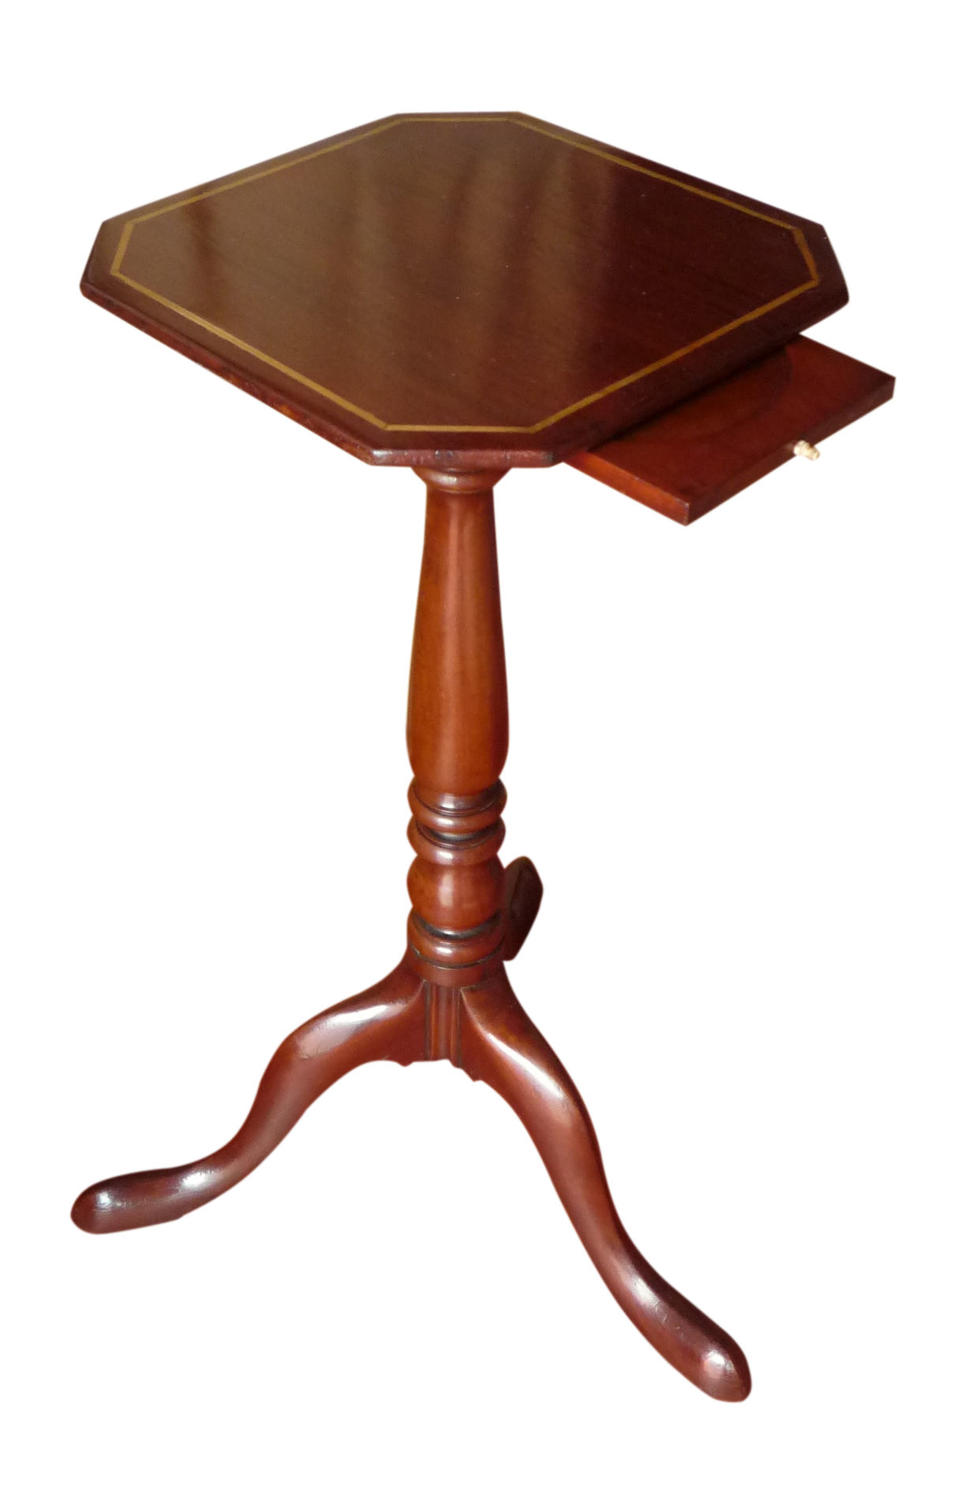 19th Century Mahogany Kettle Stand c.1820